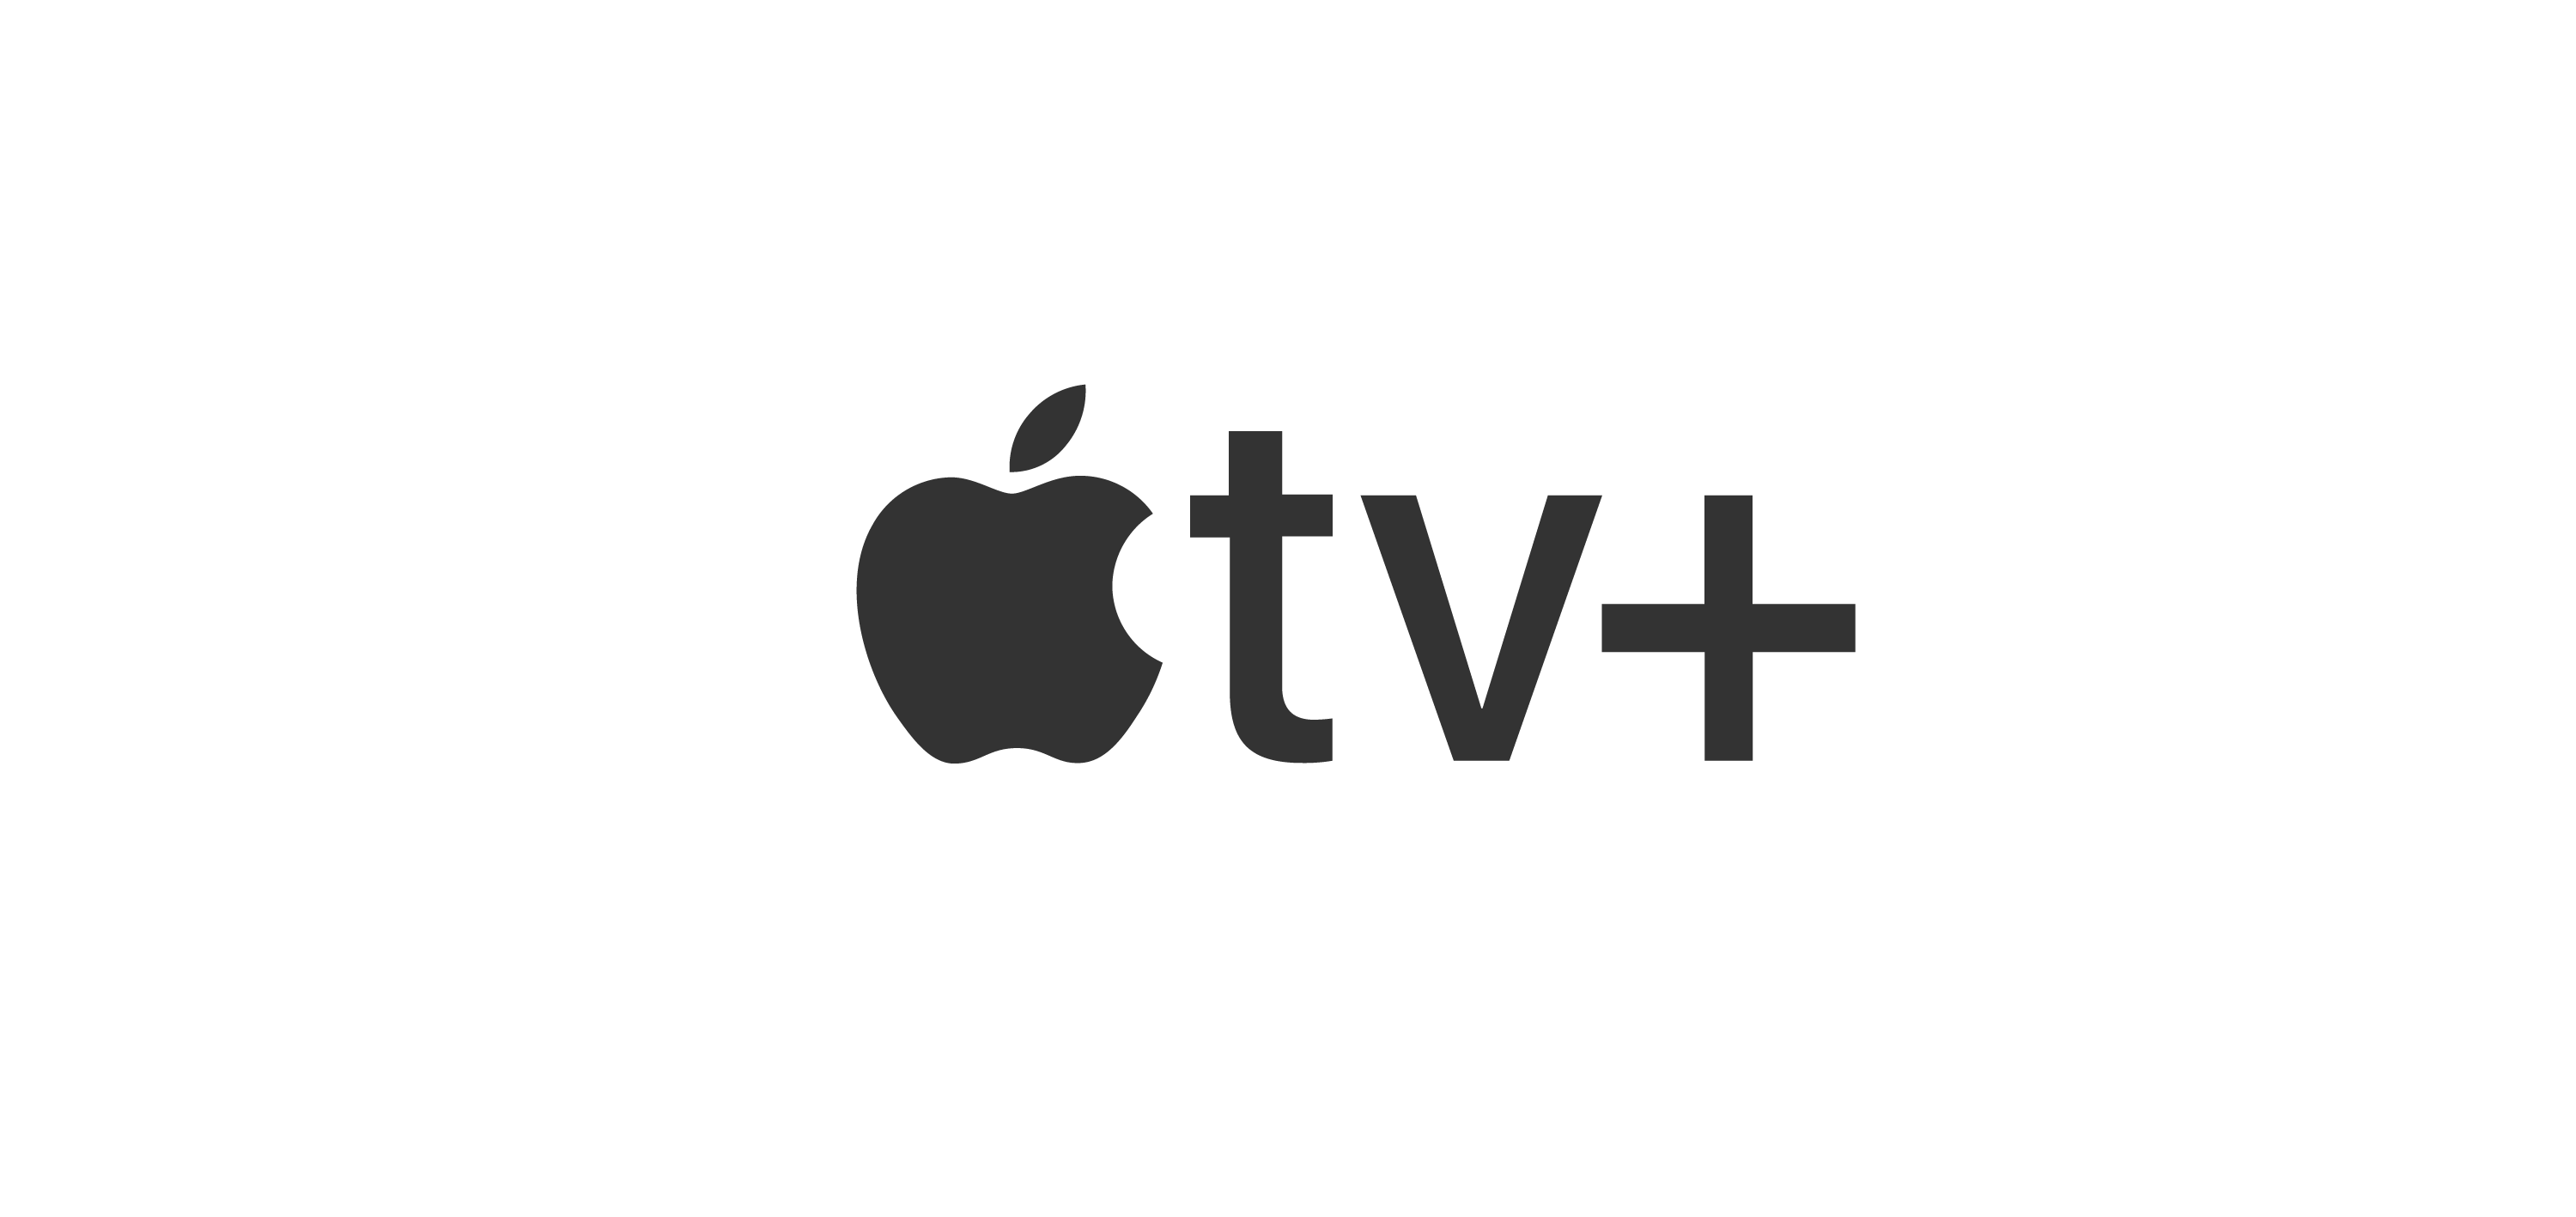 Apple TV Plus logo vector